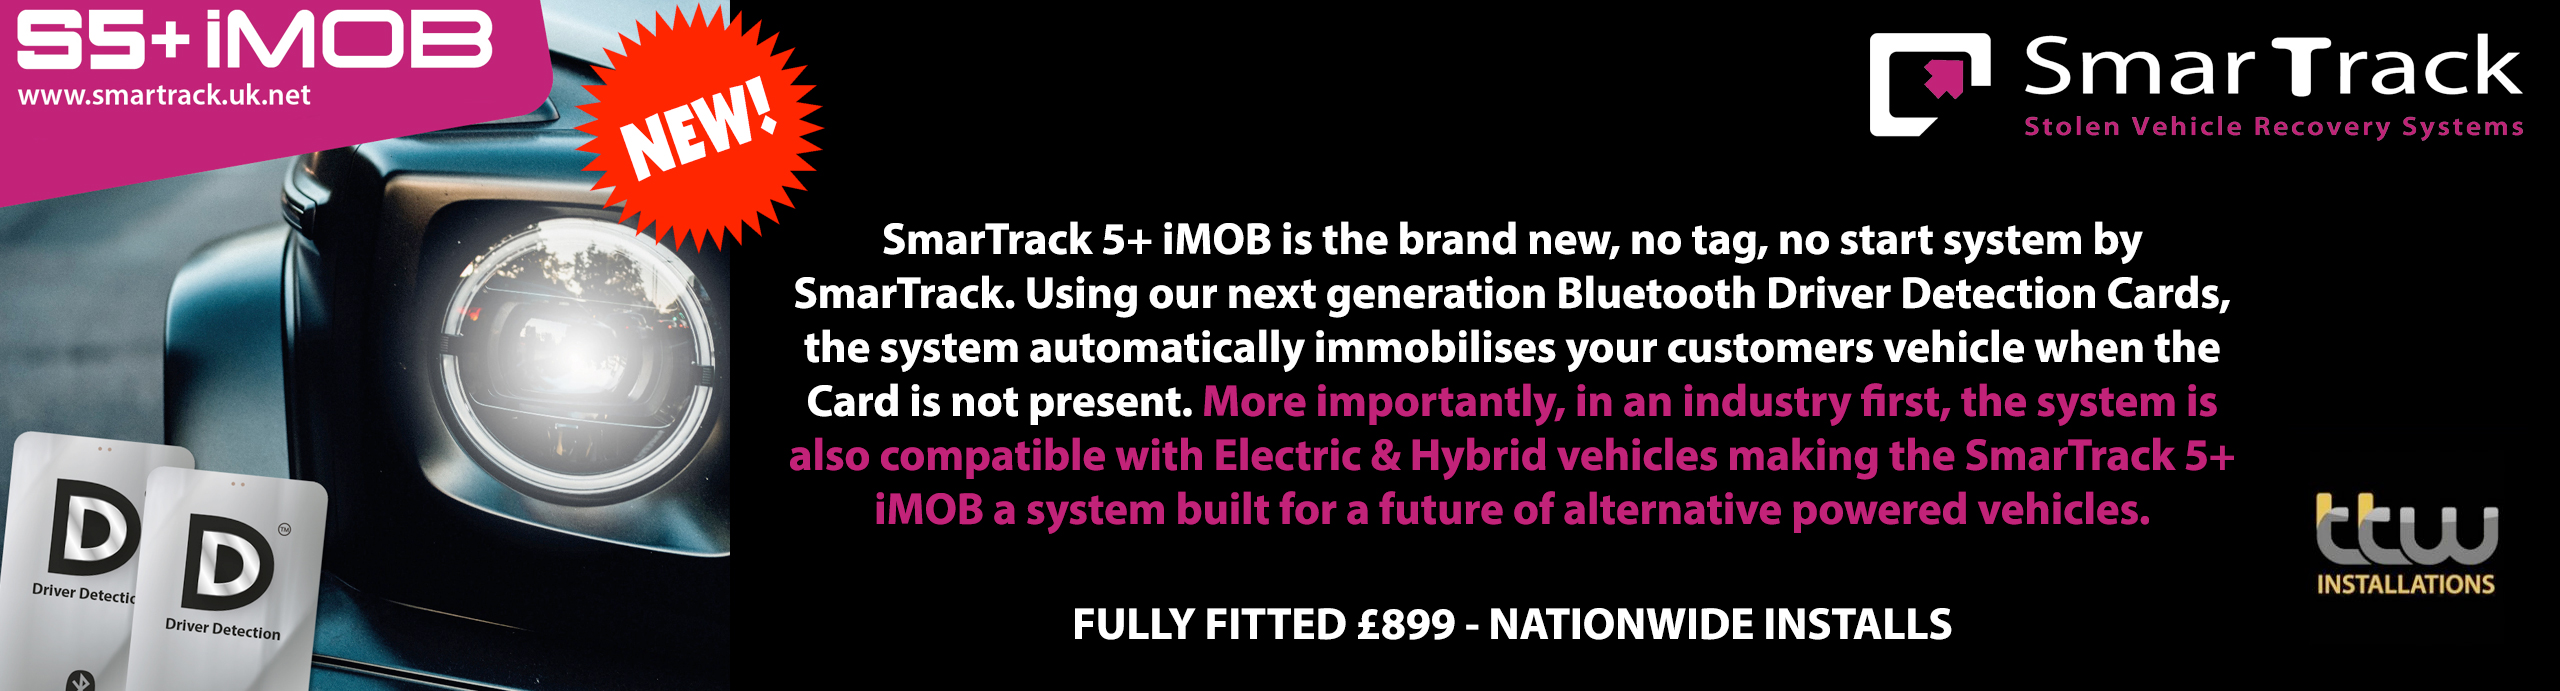 The Ultimate S5 Tracking System Has Arrived Introducing SmarTrack 5+ iMOB